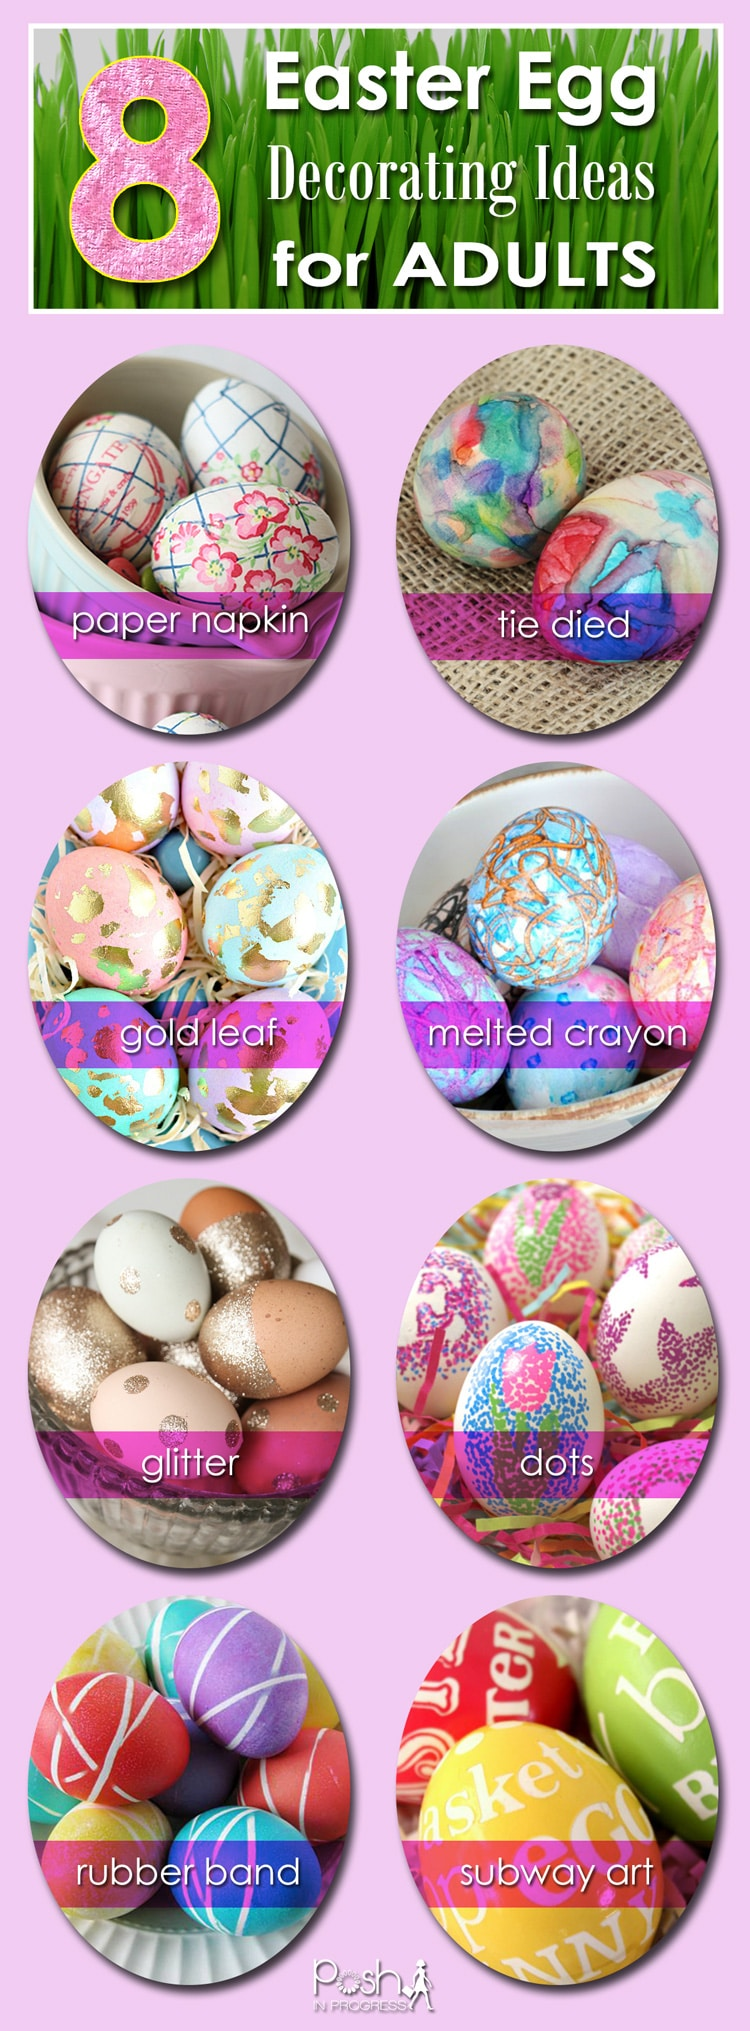 easter-egg-decorating-ideas-for-adults